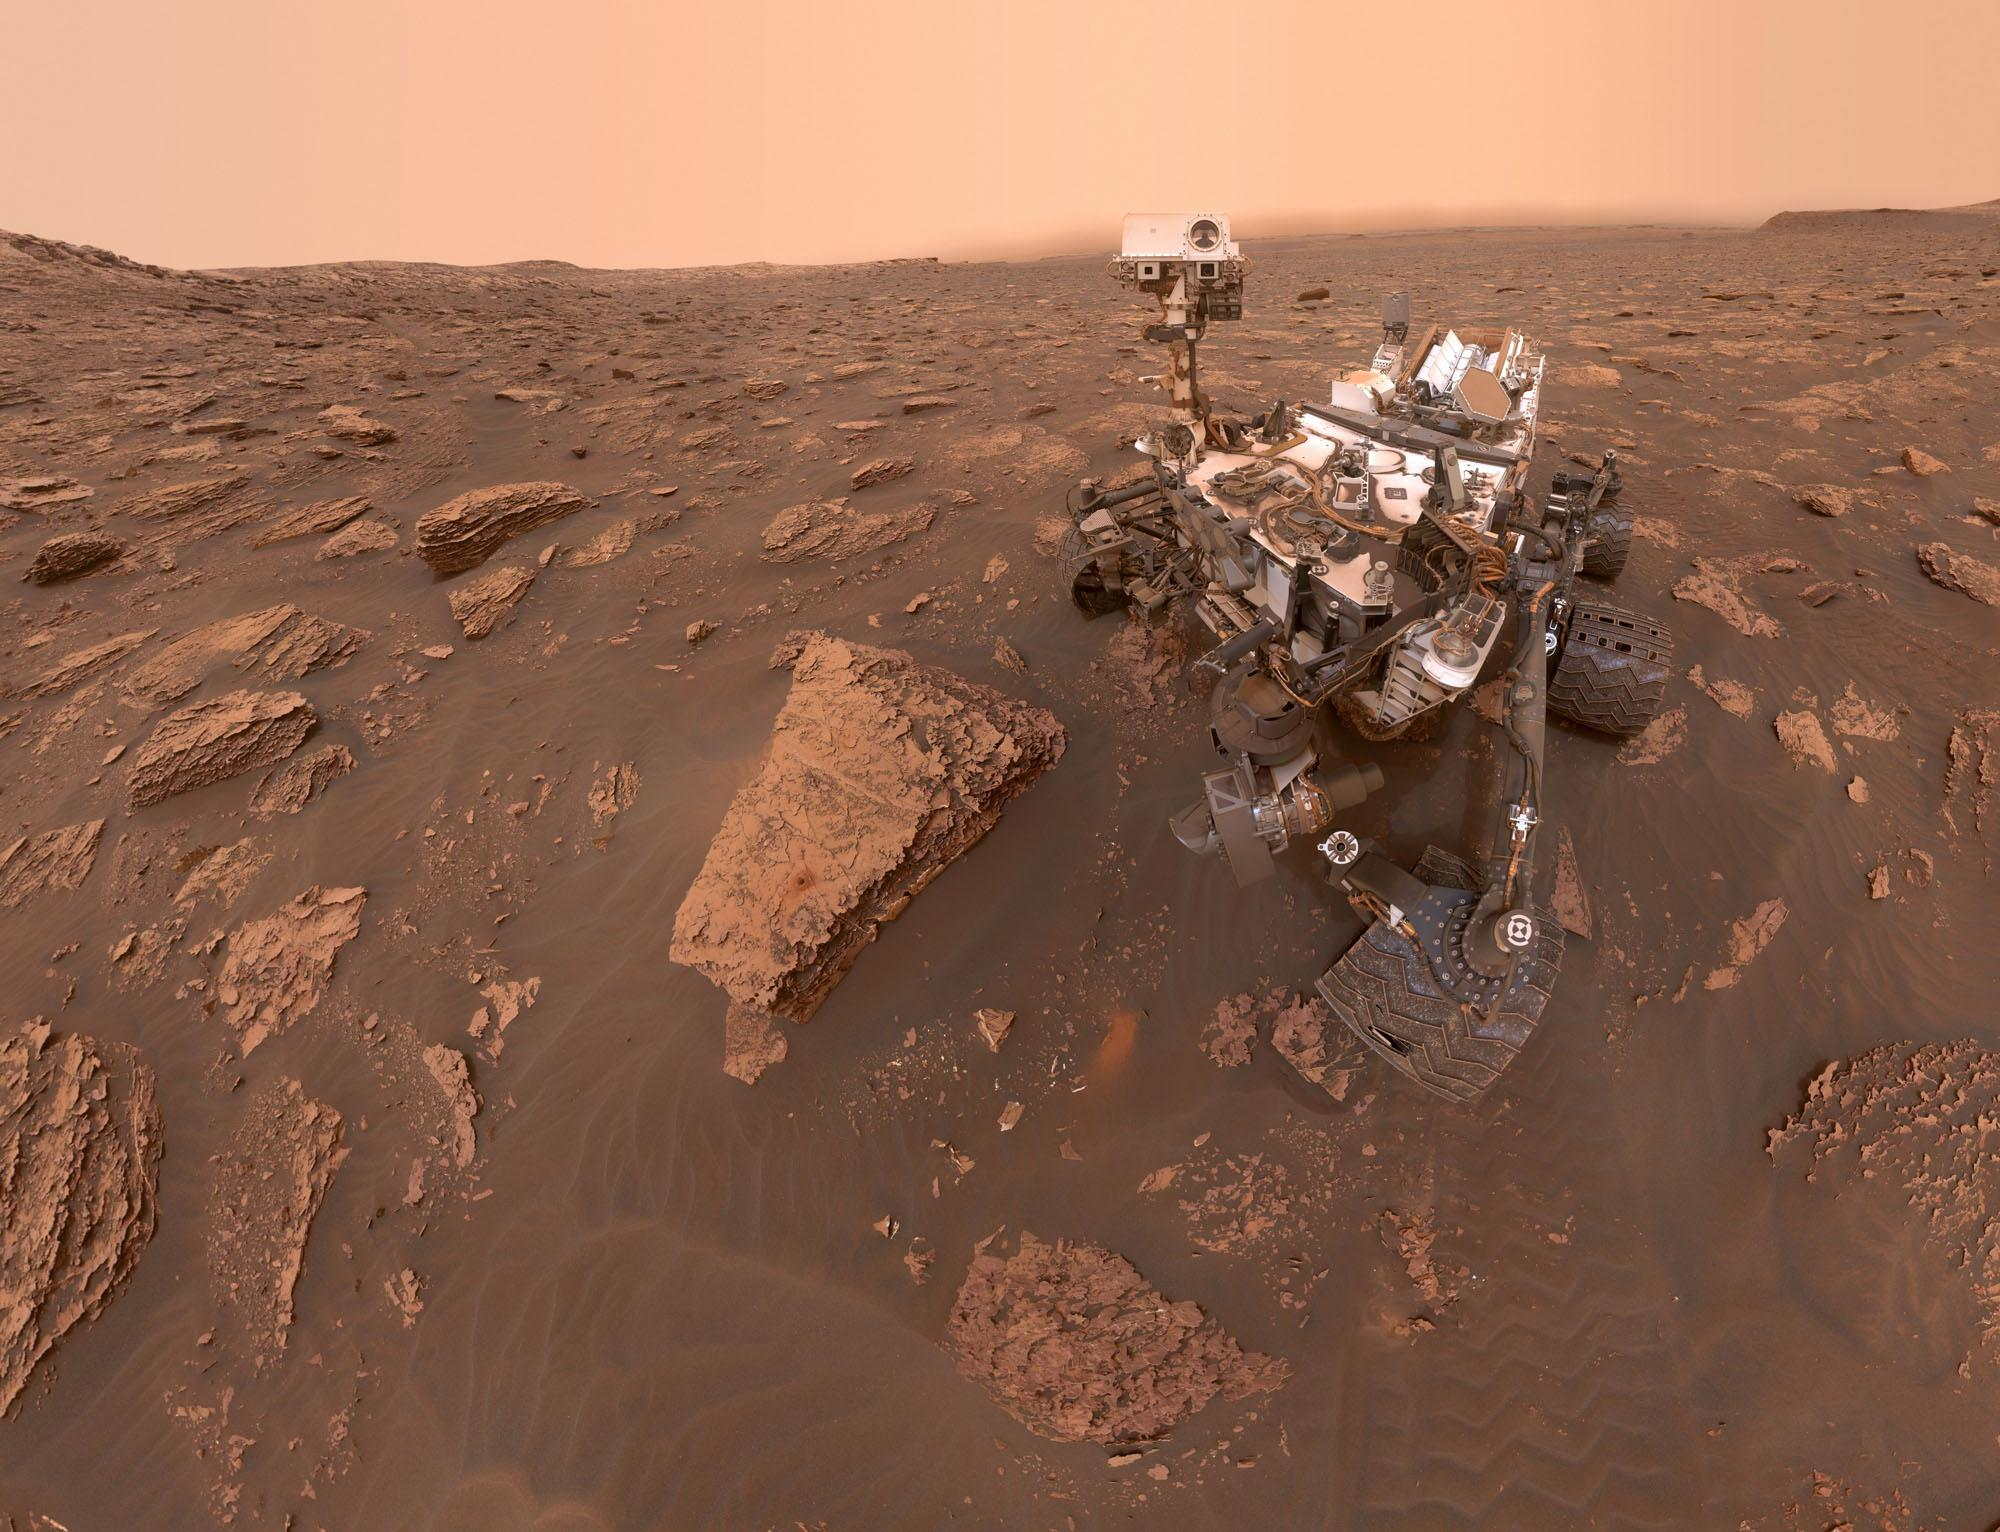 curiosity mars rover pictures - HD 1500×1149